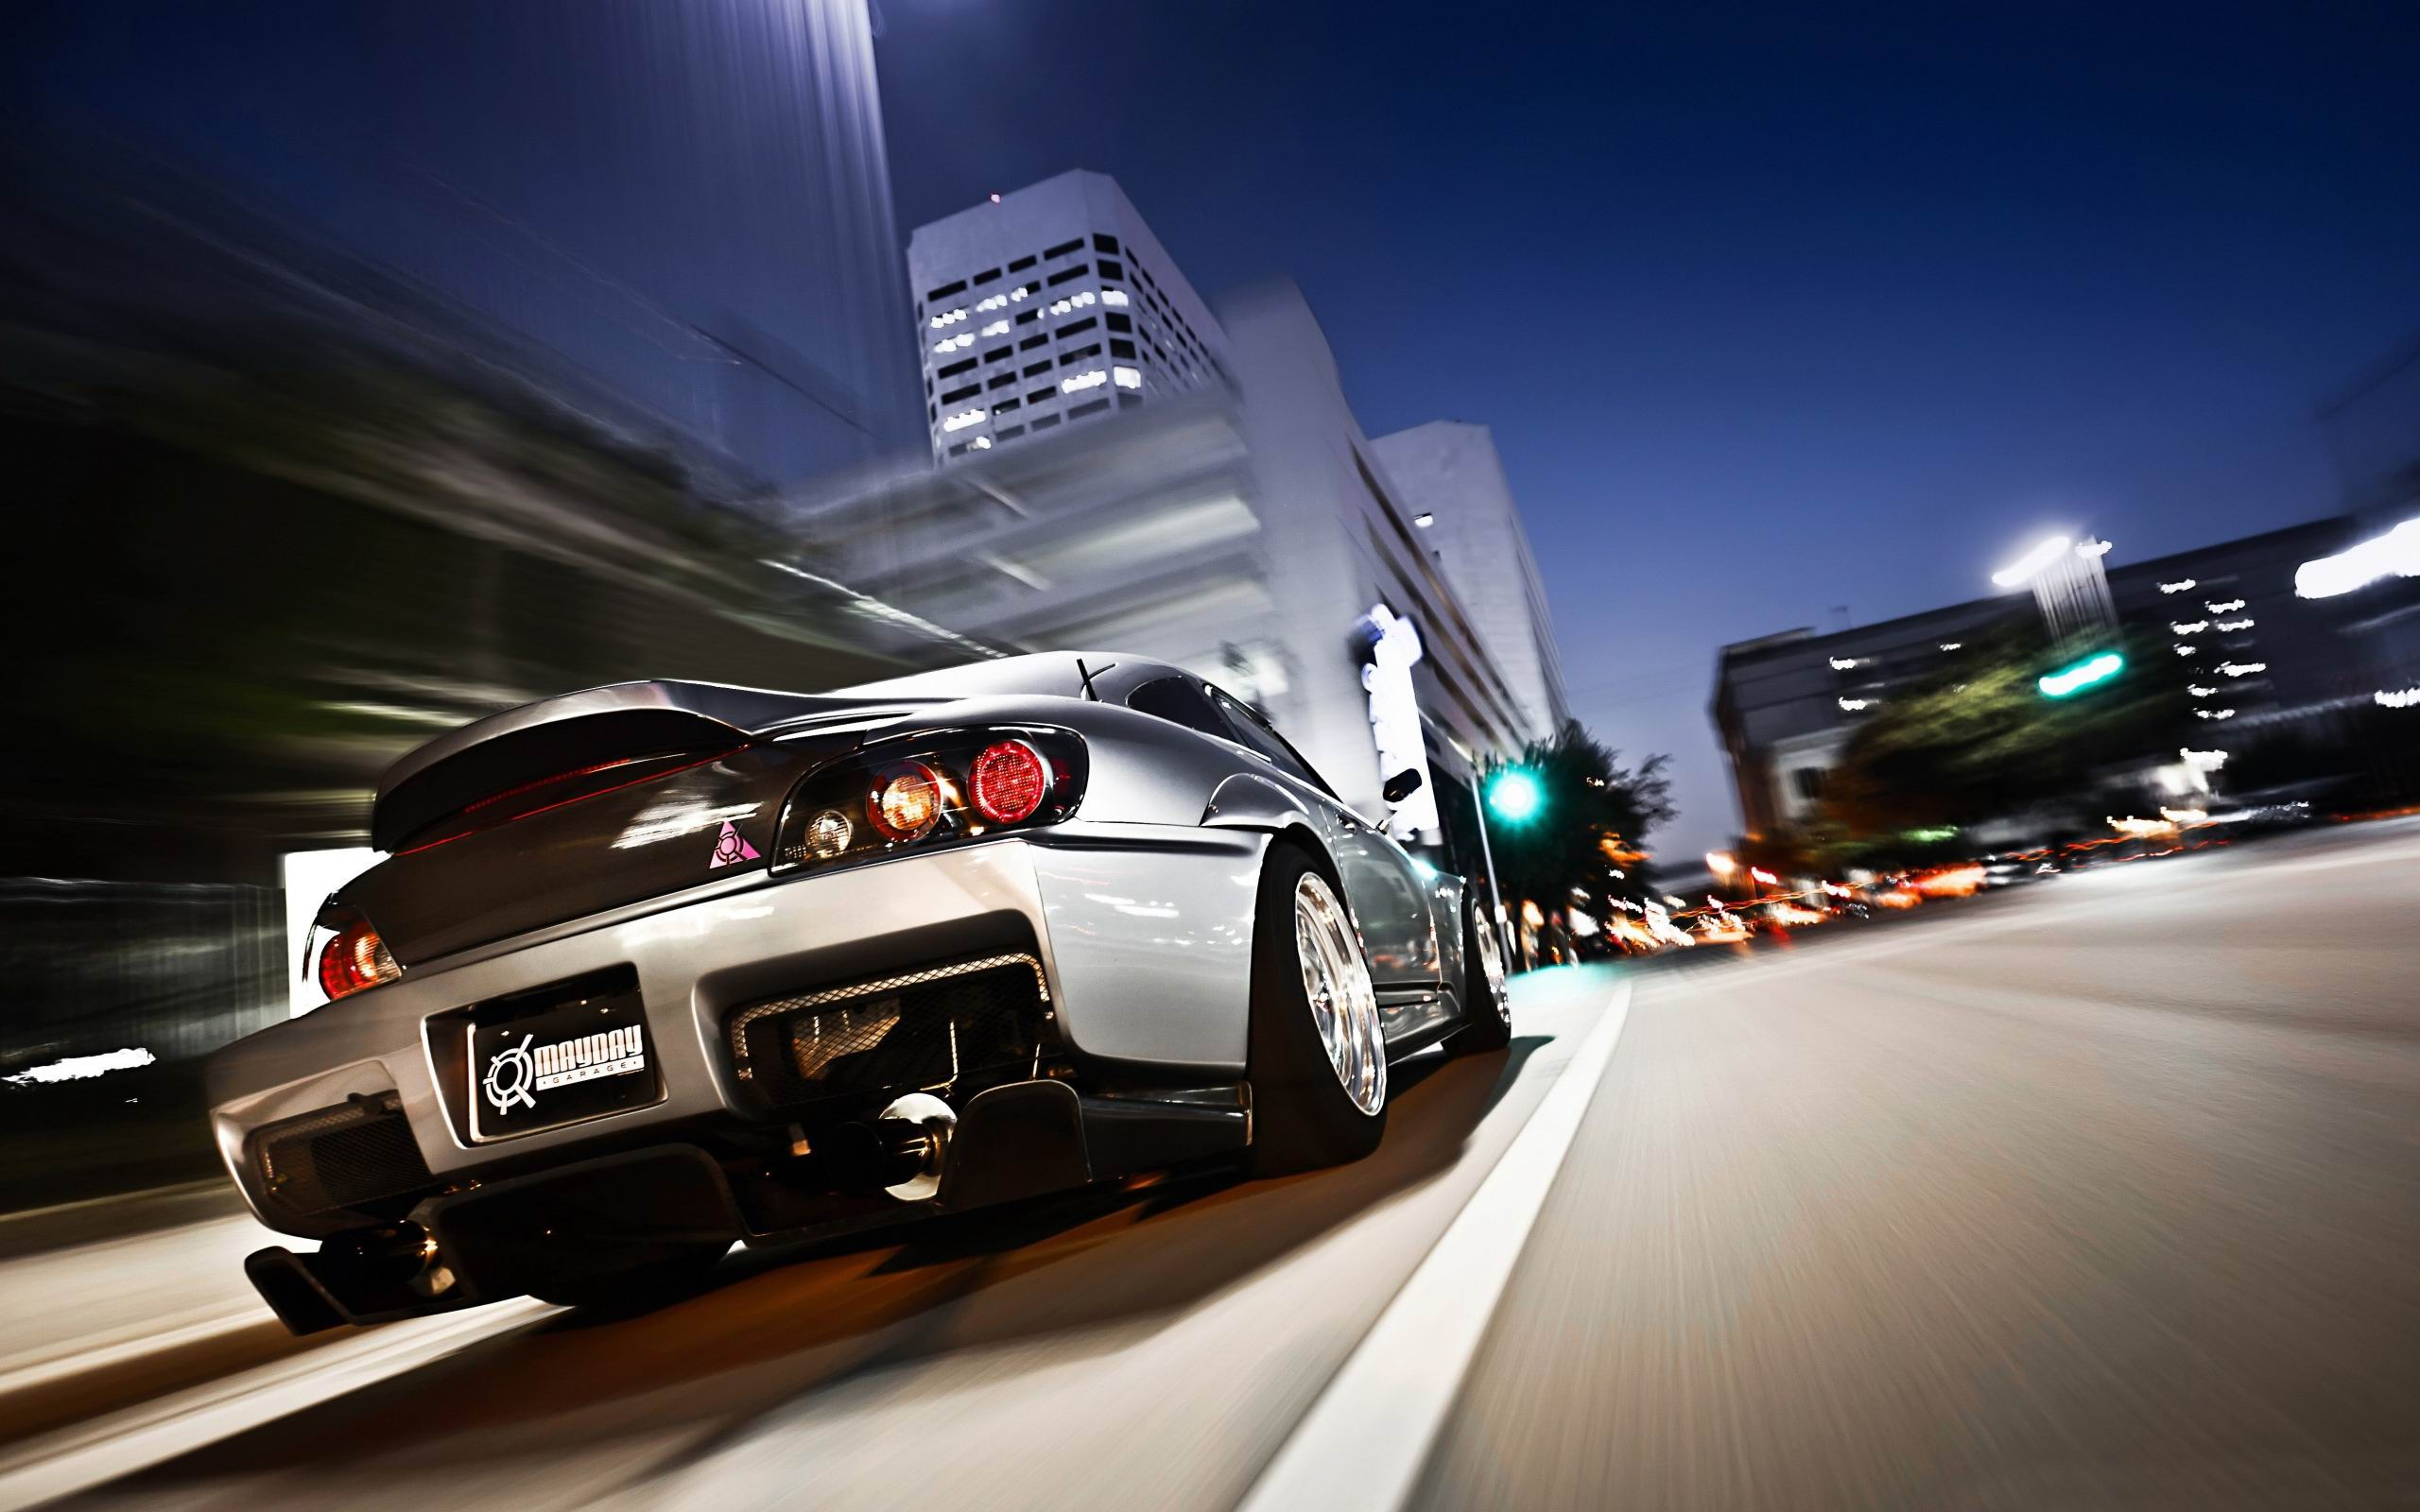 Car Wallpapers Iphone 6 Plus Honda S2000 Full Hd Wallpaper And Background Image